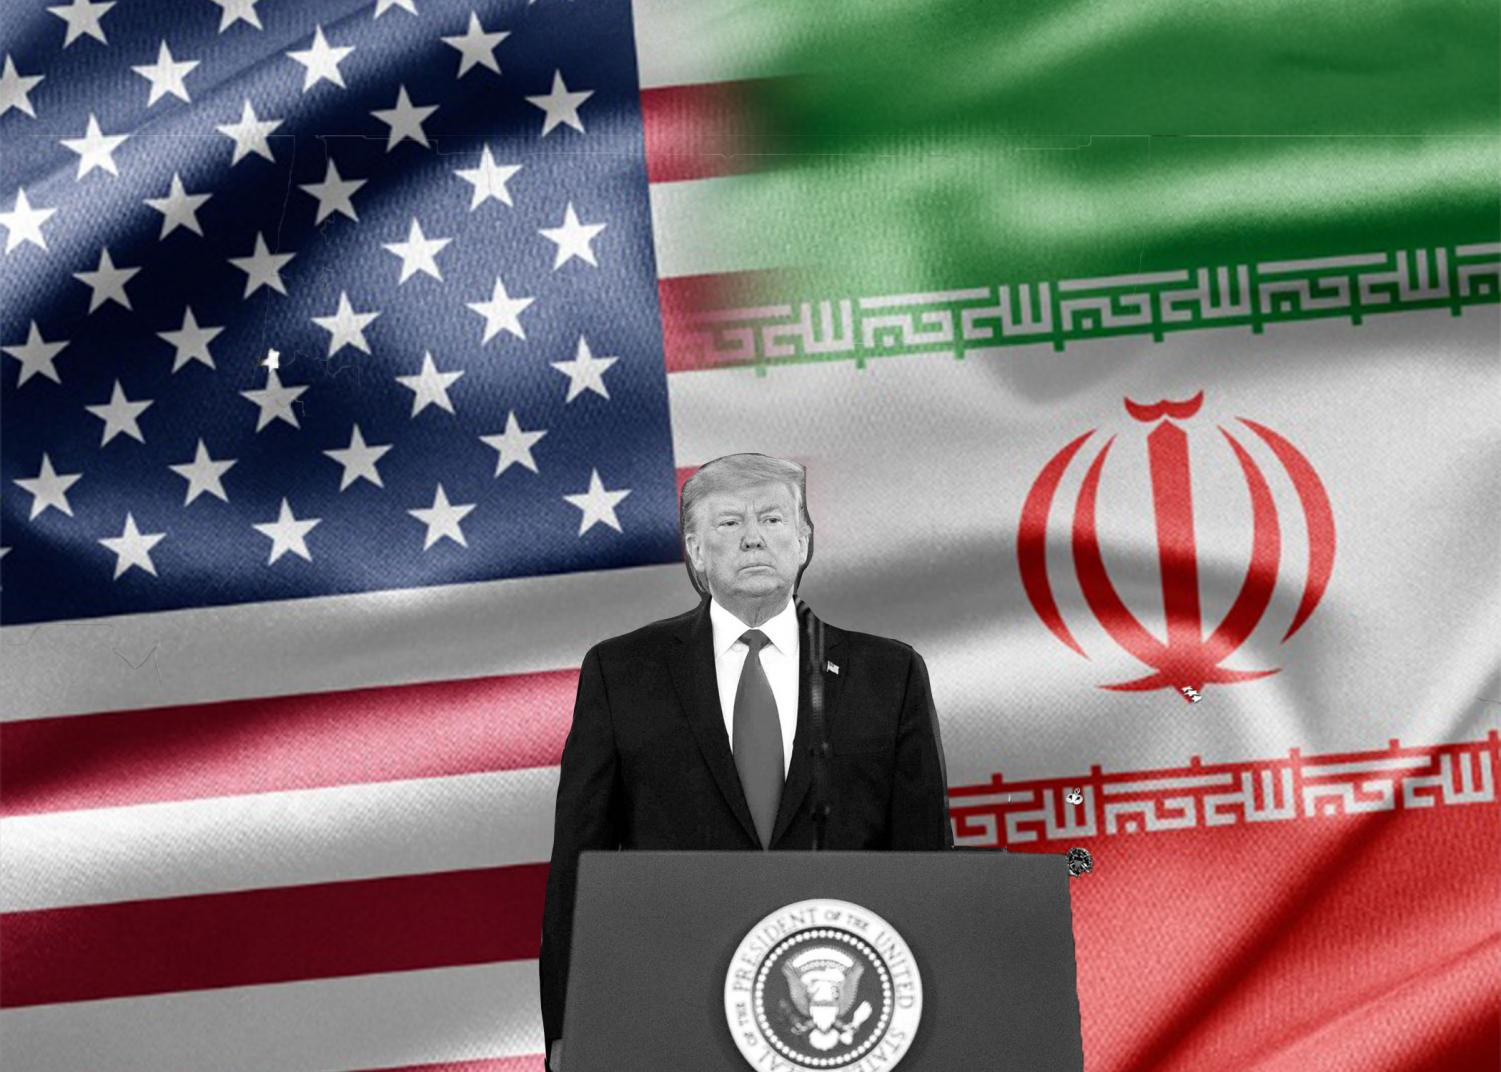 President Trump delivered a statement to the nation on January 8th, announcing what appeared to be a deescalation of tensions between the US and Iran. Graphic courtesy of Keigan McCullagh.